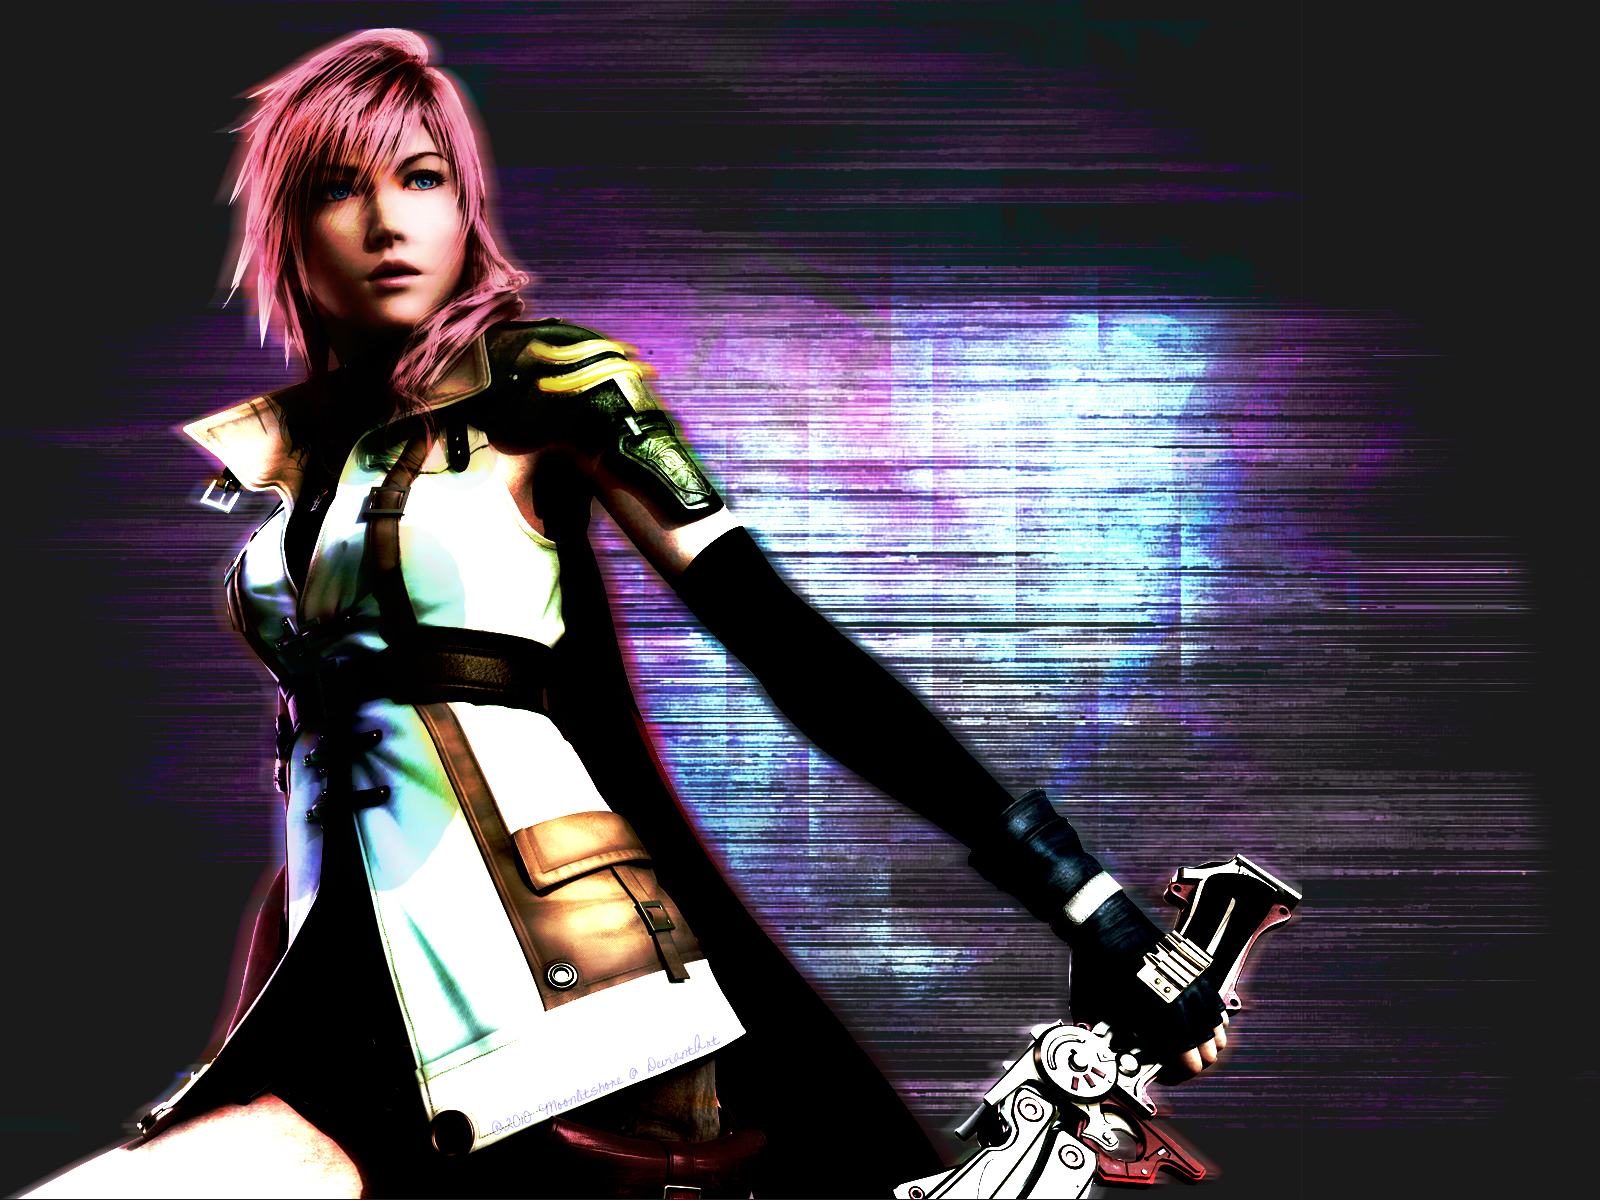 ff13 lightning wallpapermoonlitshore on deviantart